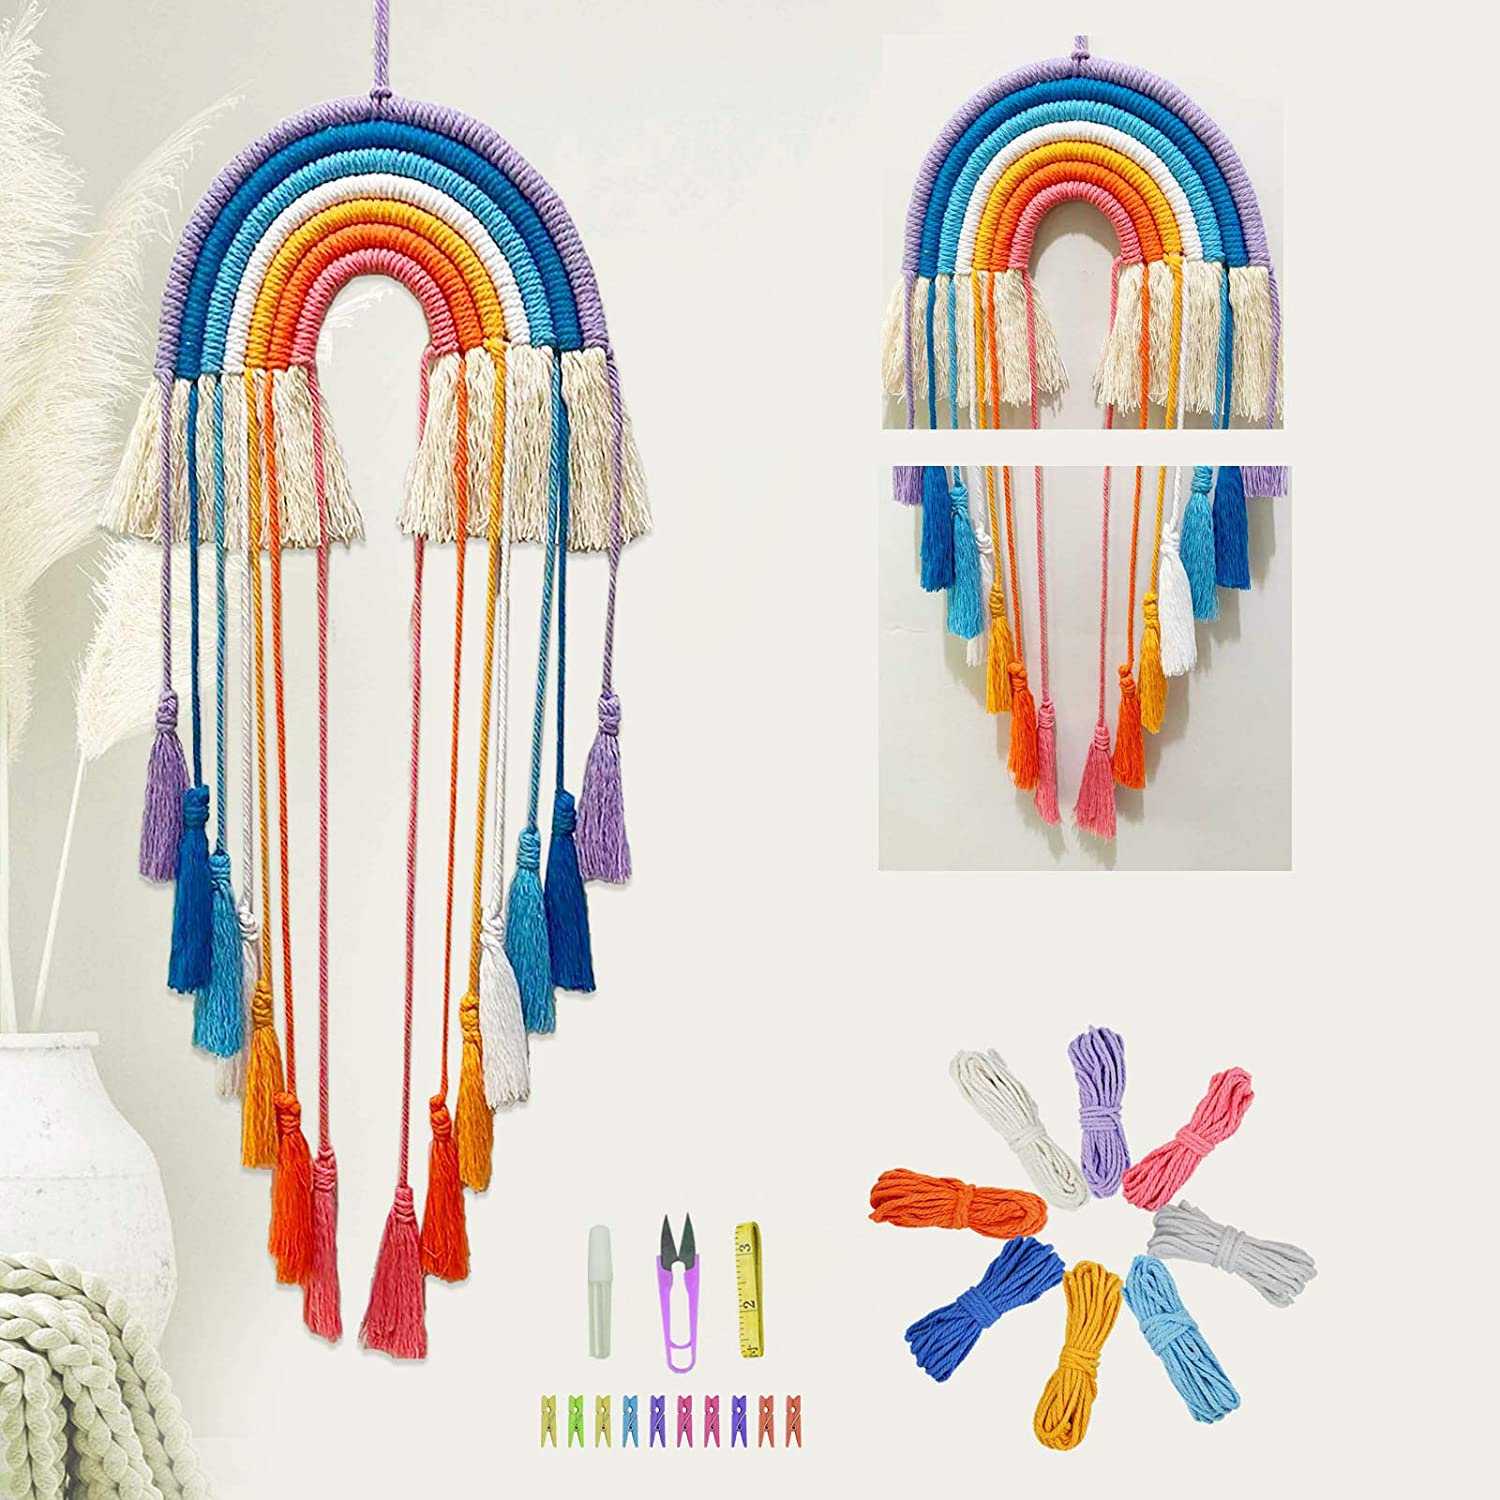 New life Now free shipping Macrame-Kit Tassel Rainbow-Wall-Hanging for Beginne Teens Adults